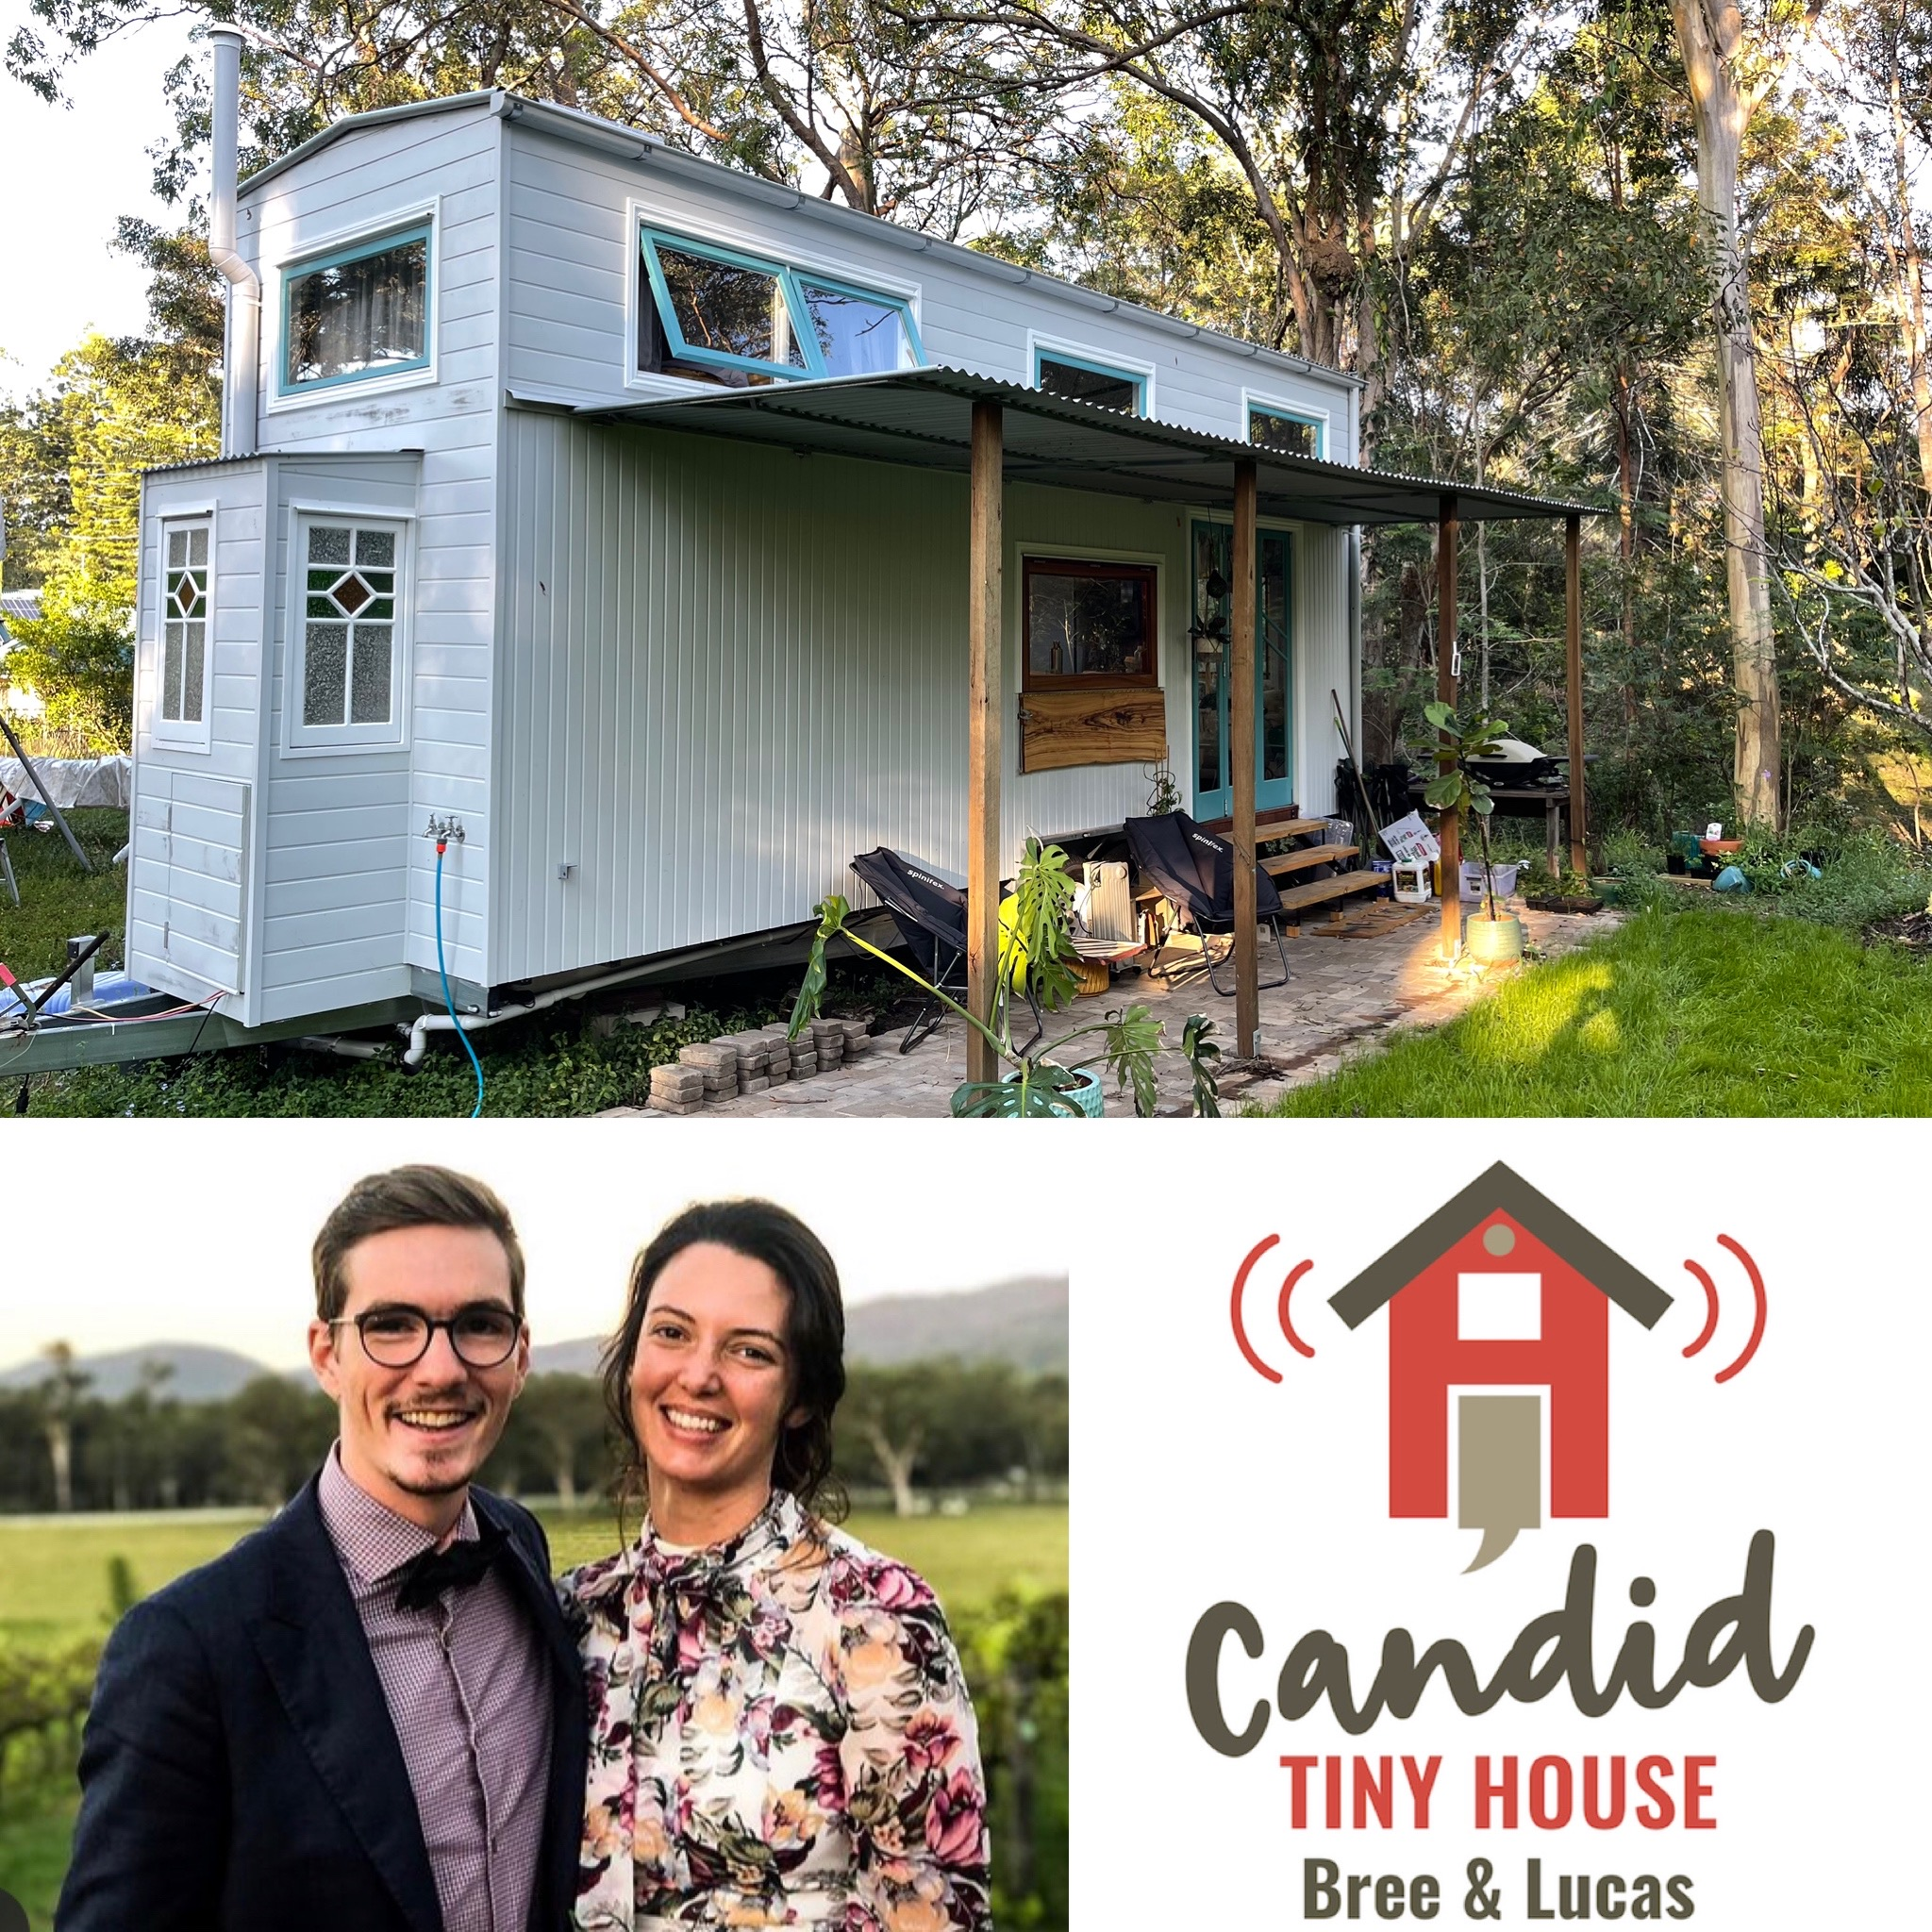 Bree & Lucas Candid Tiny House